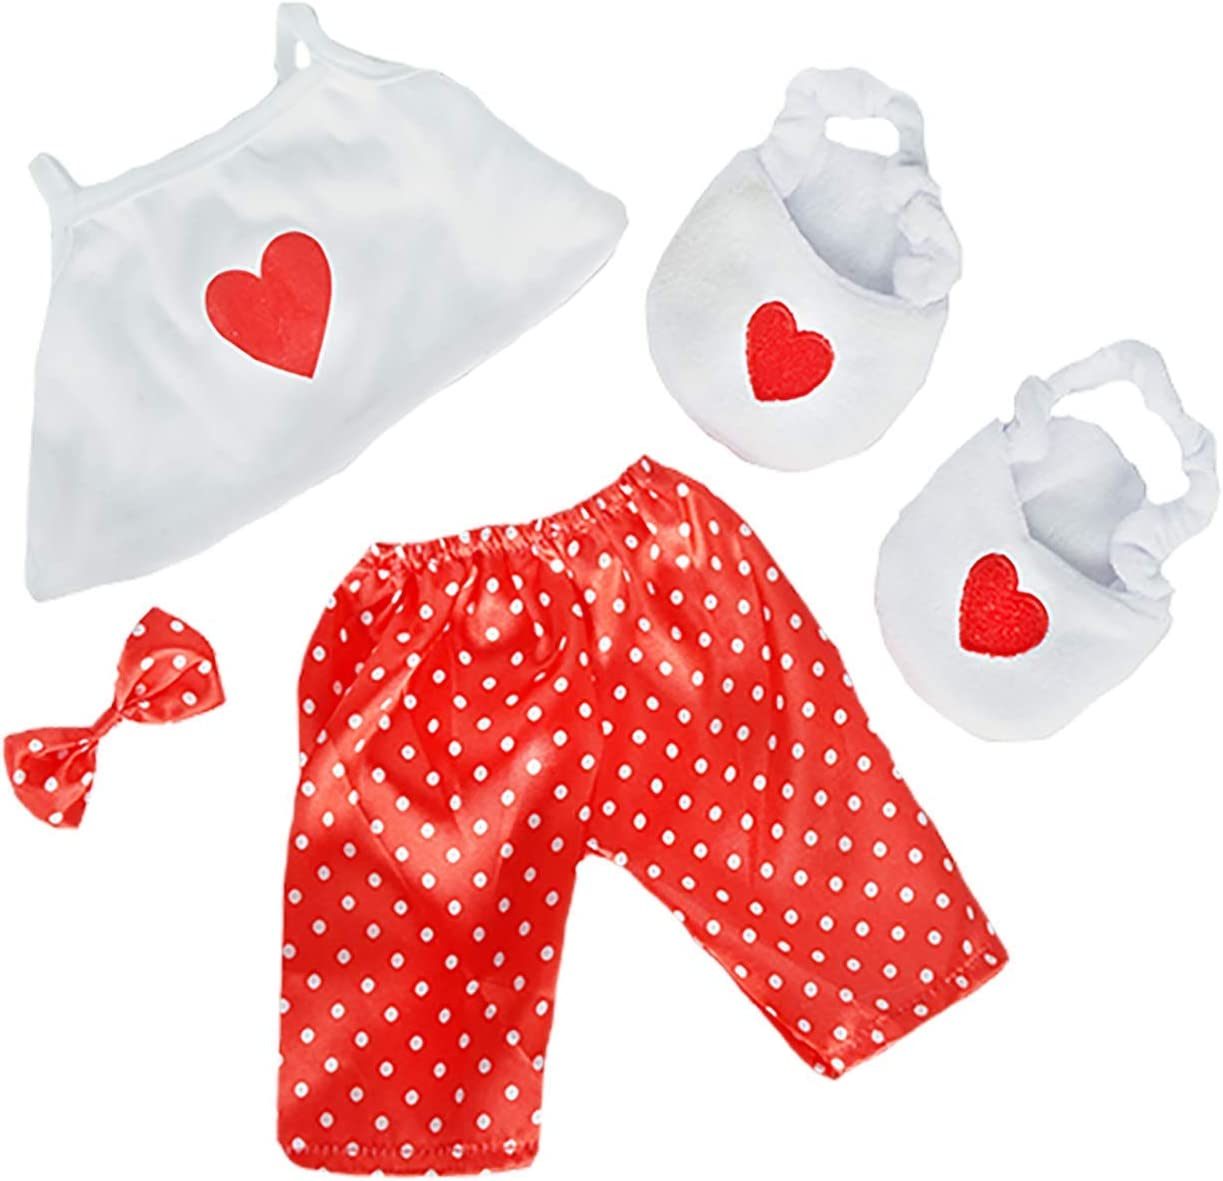 """B003GYTR8S Satin Heart Pj's with Heart Slippers Teddy Bear Clothes Fits Most 14""""-18"""" Build-A-Bear and Make Your Own Stuffed Animals 61iLc-GTQBL"""